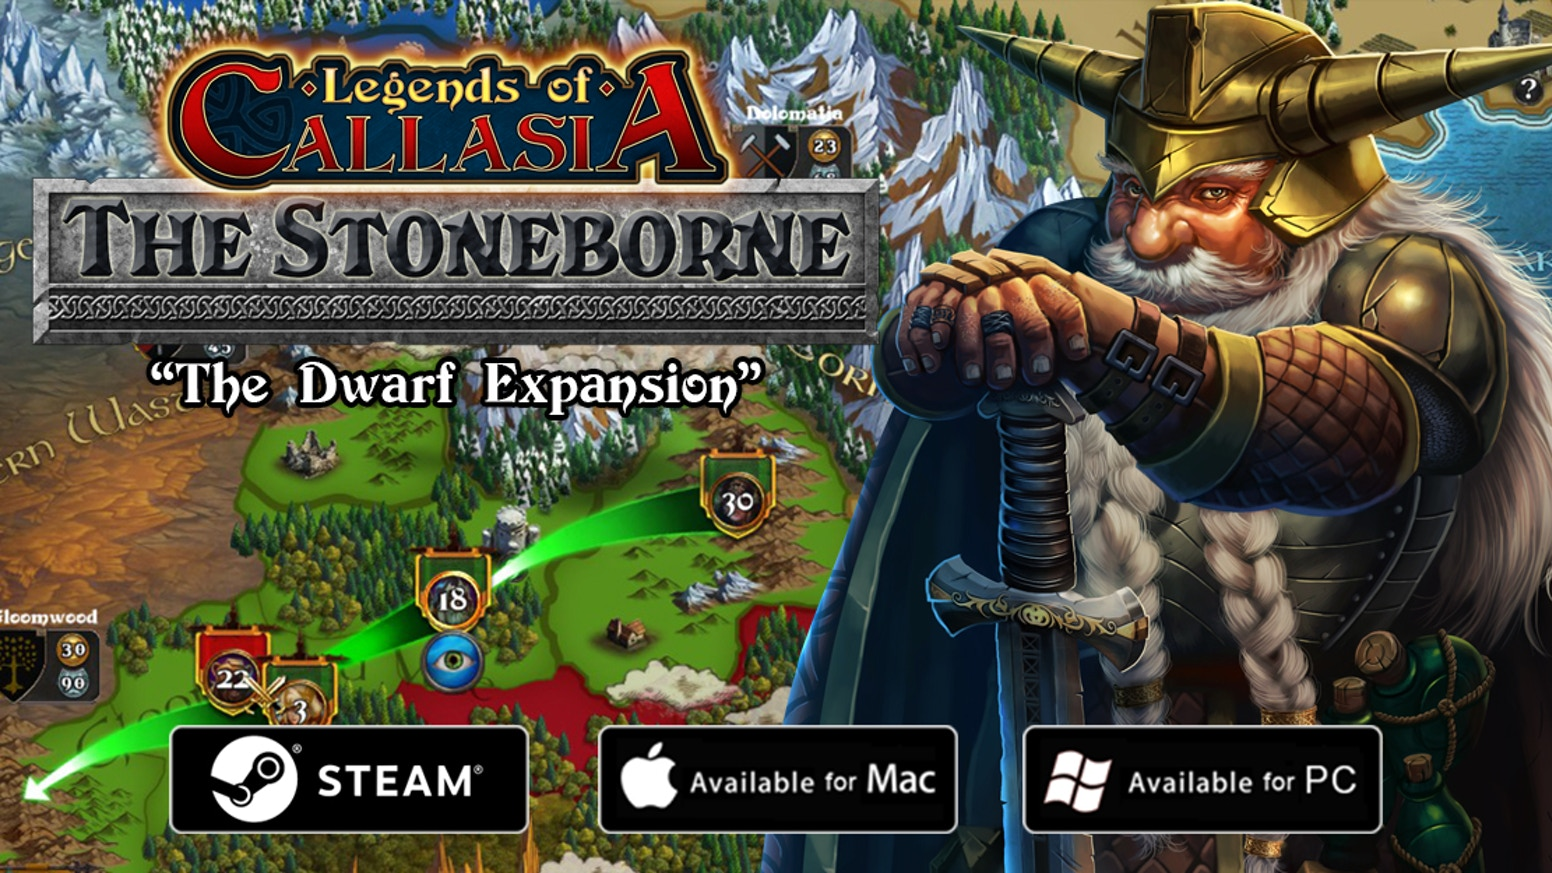 Legends of Callasia: The Stoneborne is an expansion for the strategy game Legends of Callasia with a new playable faction: the Dwarves!